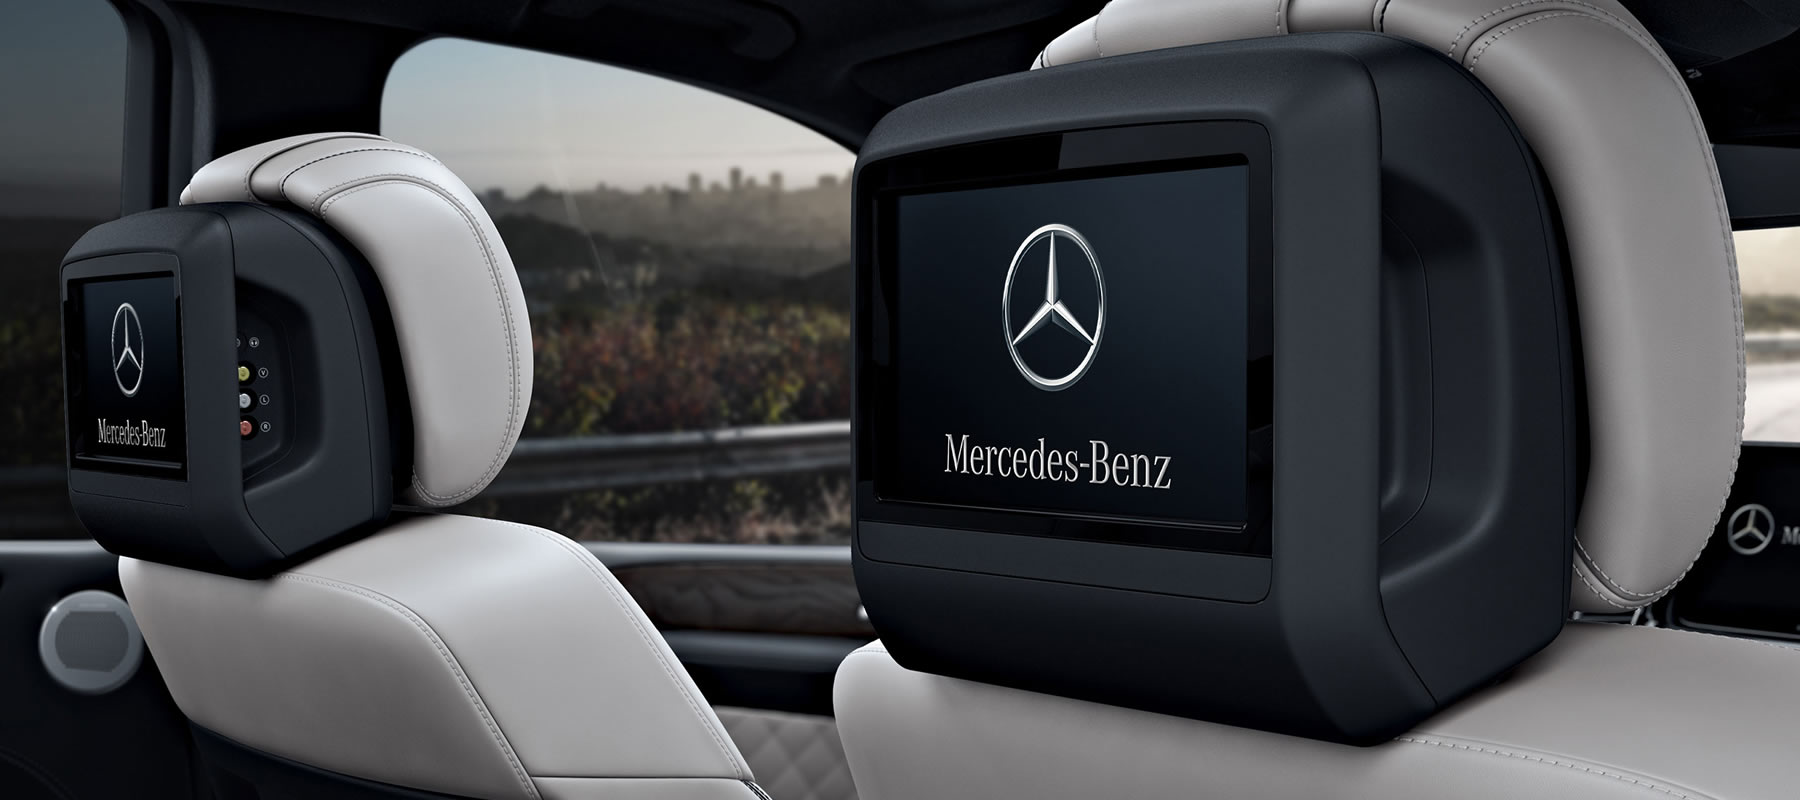 Genuine mercedes benz parts accessories at mercedes benz for Mercedes benz oem parts online